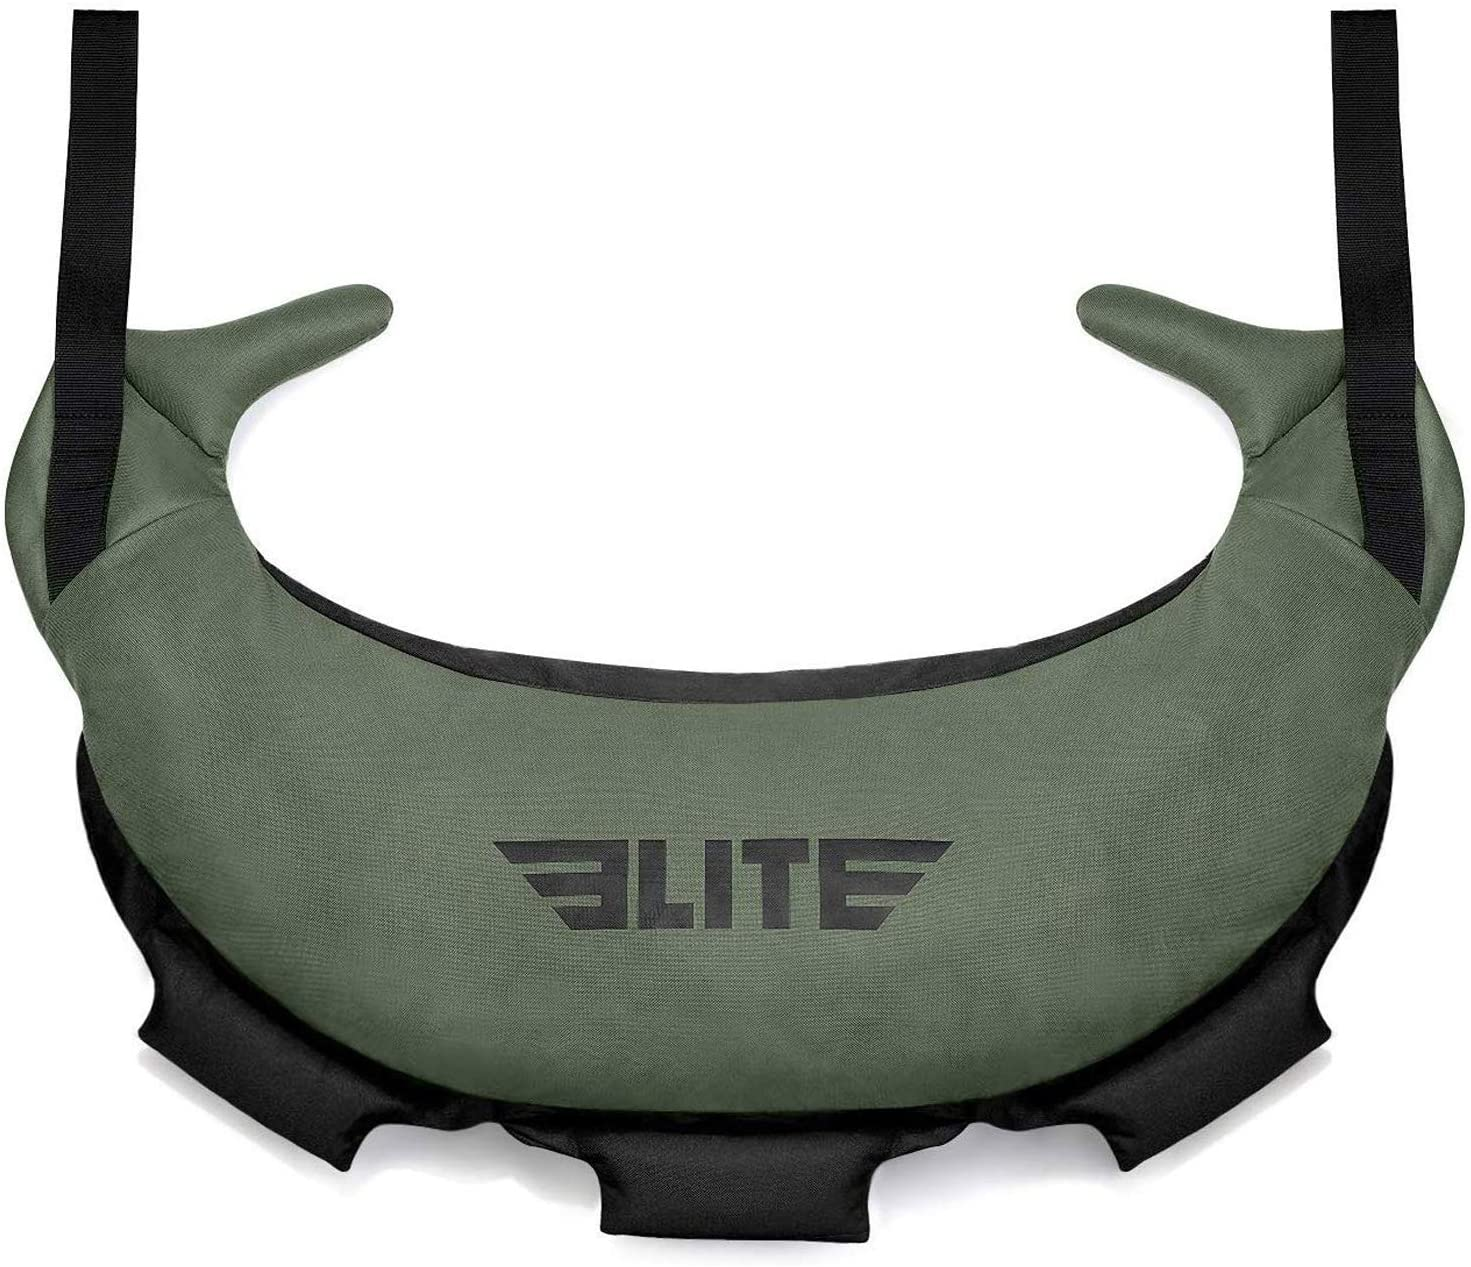 Bulgarian Canvas Max 81% OFF Bag Limited price for Crossfit Fitness Elite M Sports